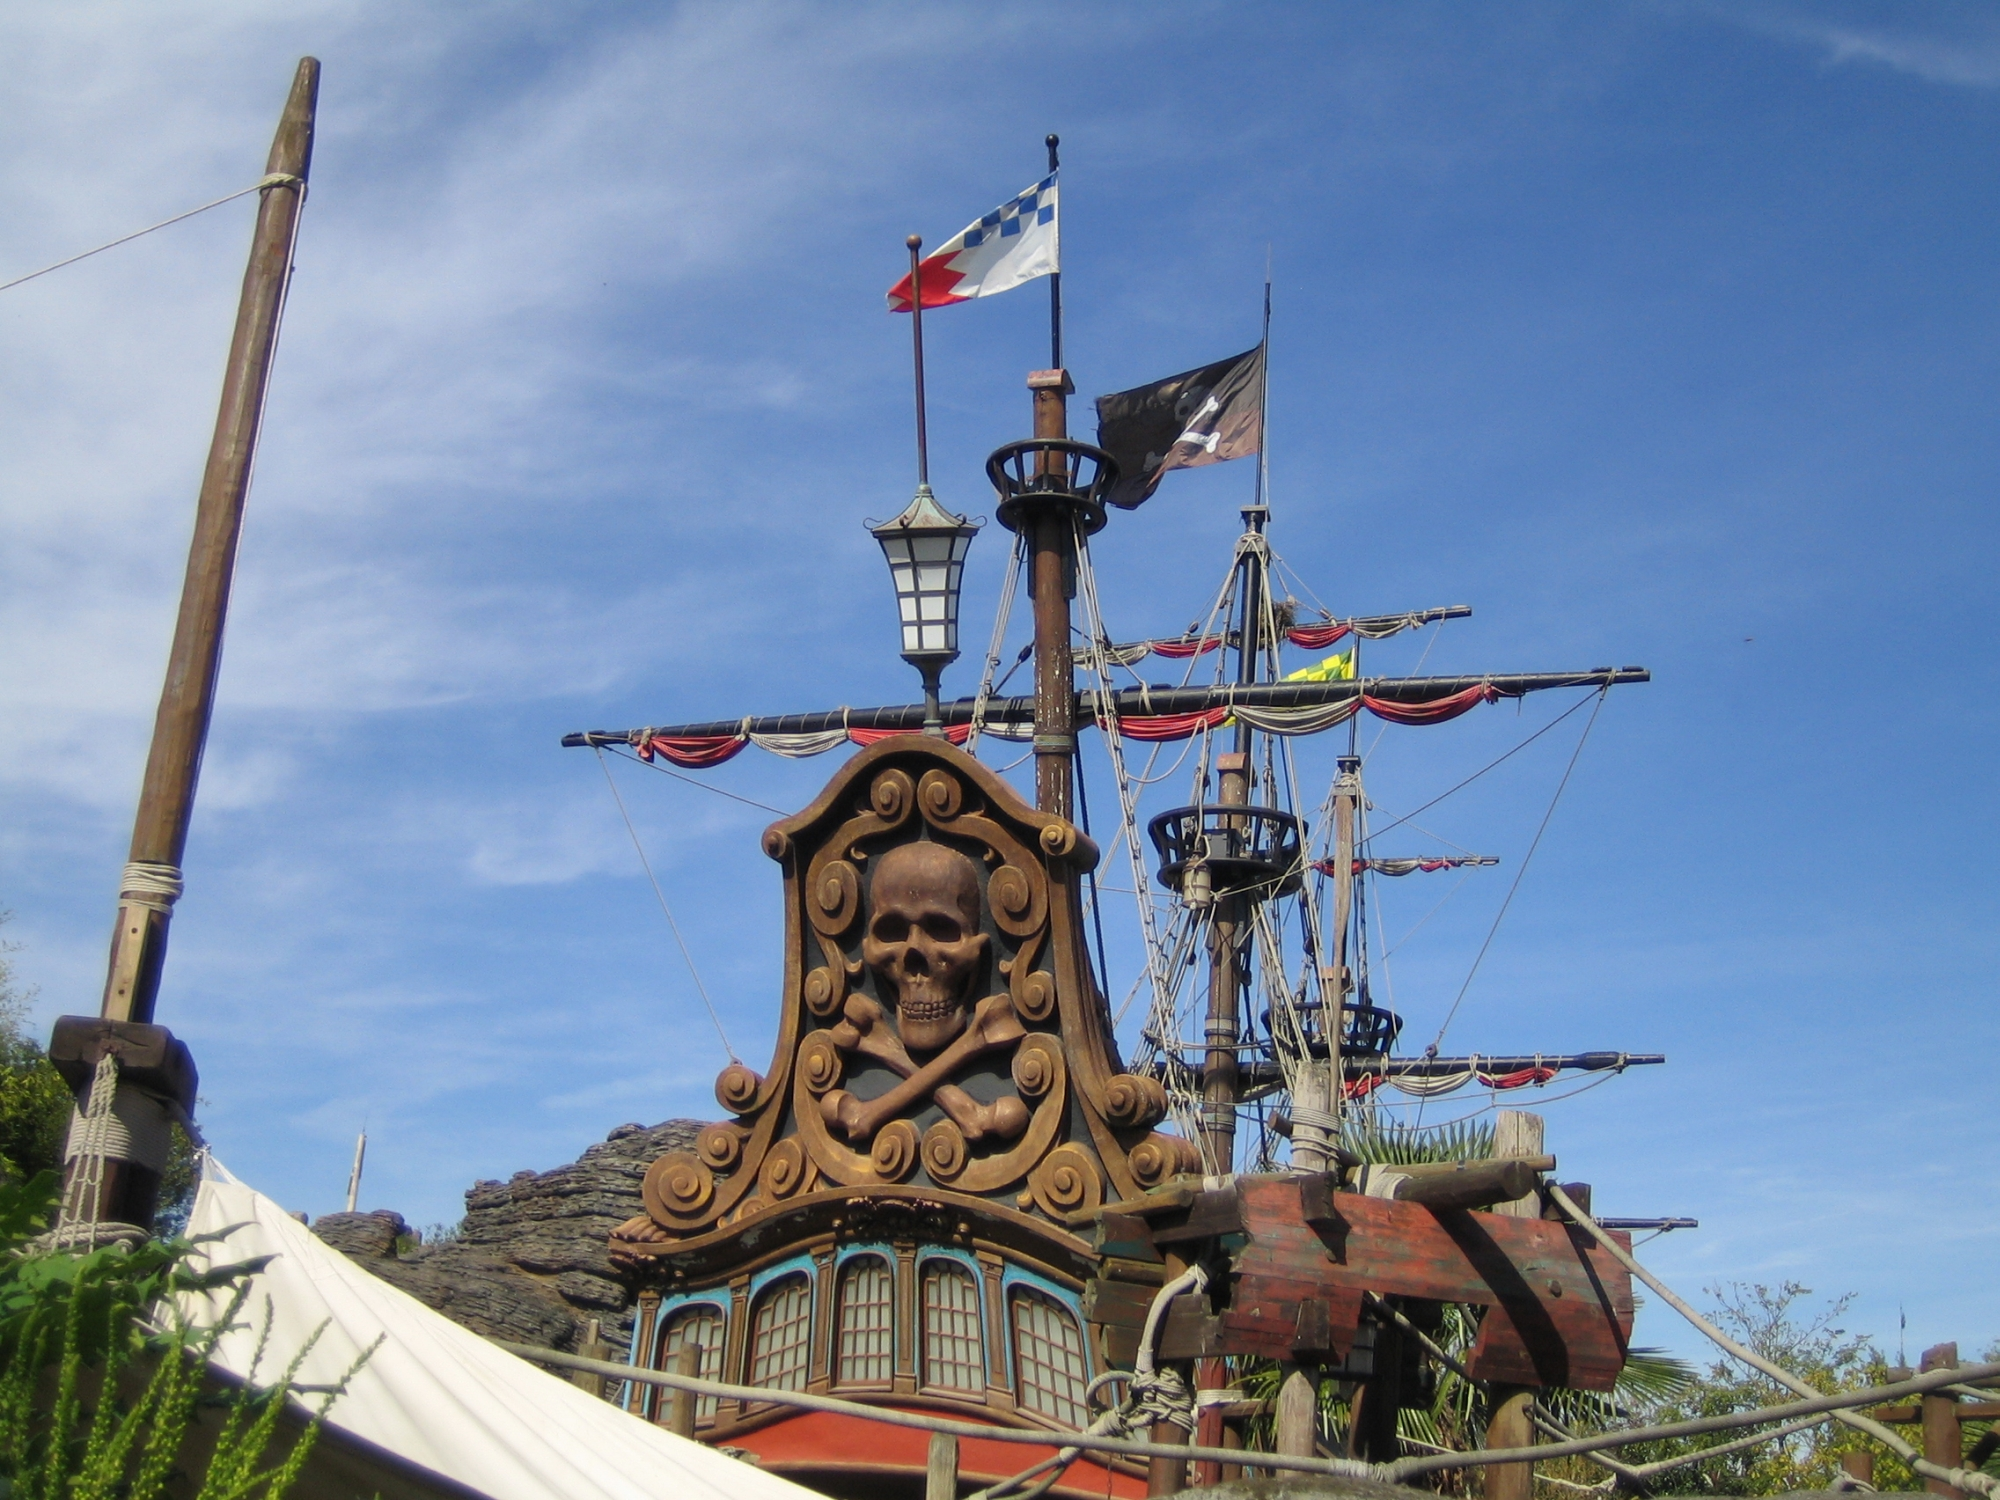 Disneyland Paris - Adventureland - Pirate Ship